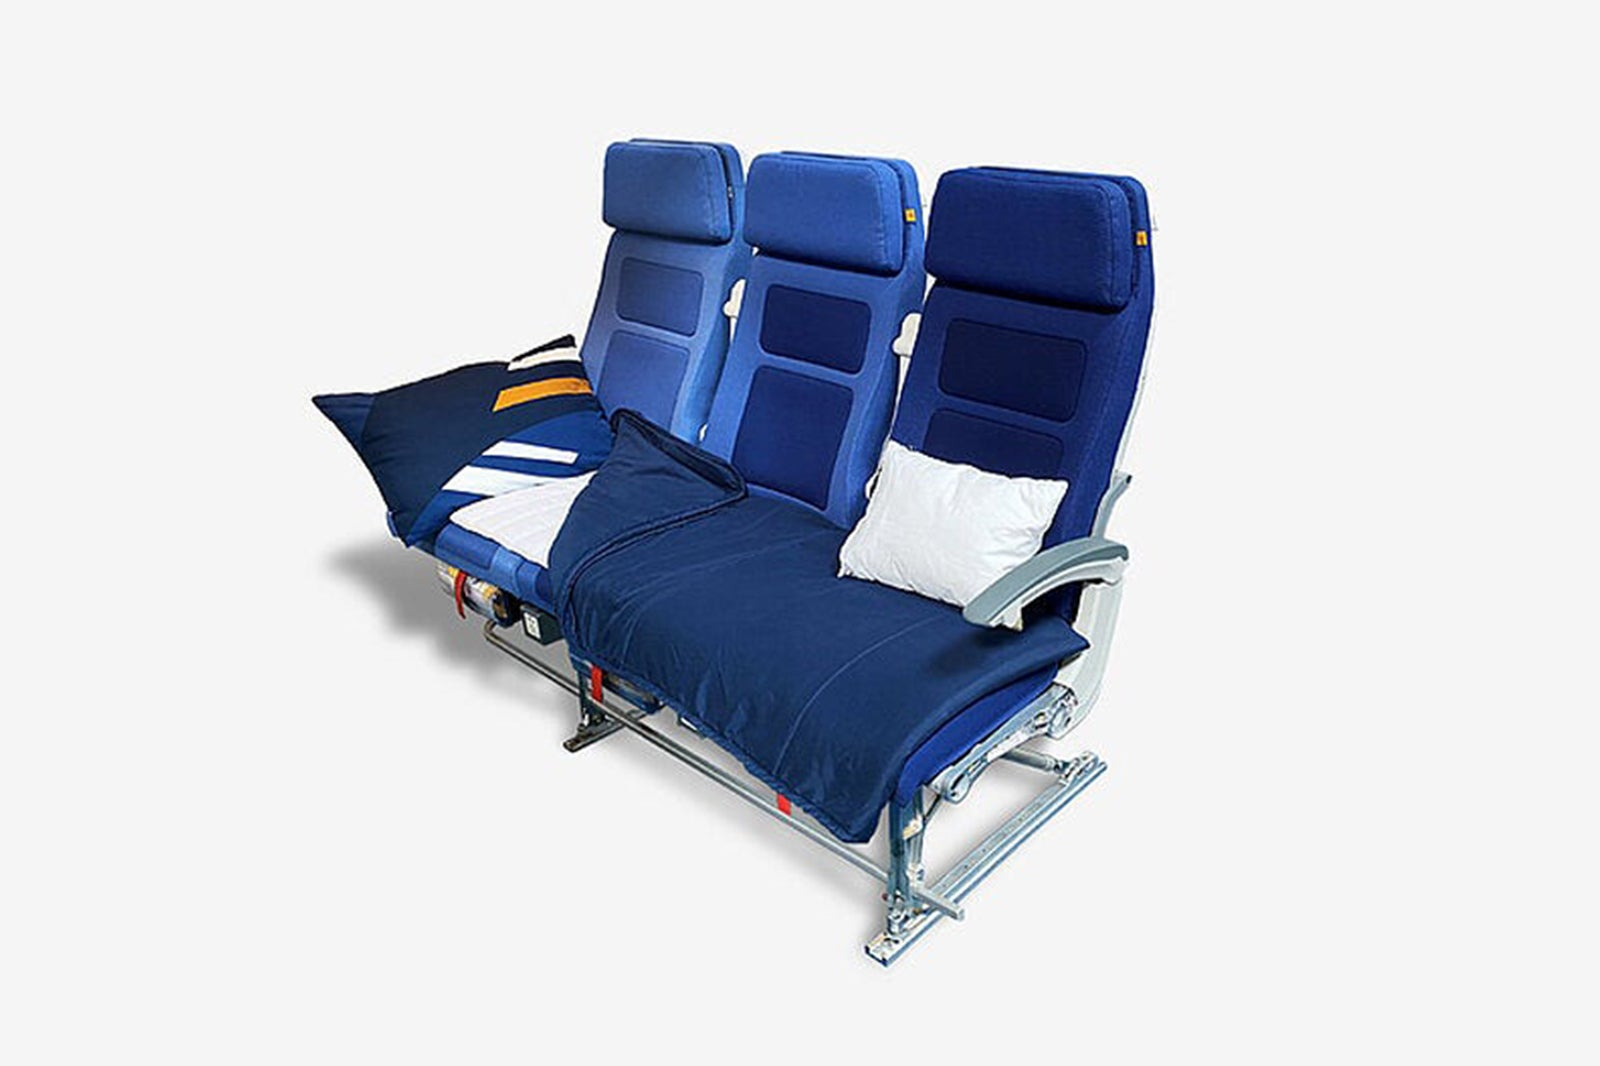 Lufthansa expanding lie-flat economy Sleeper Row seat to more flights - The Points Guy